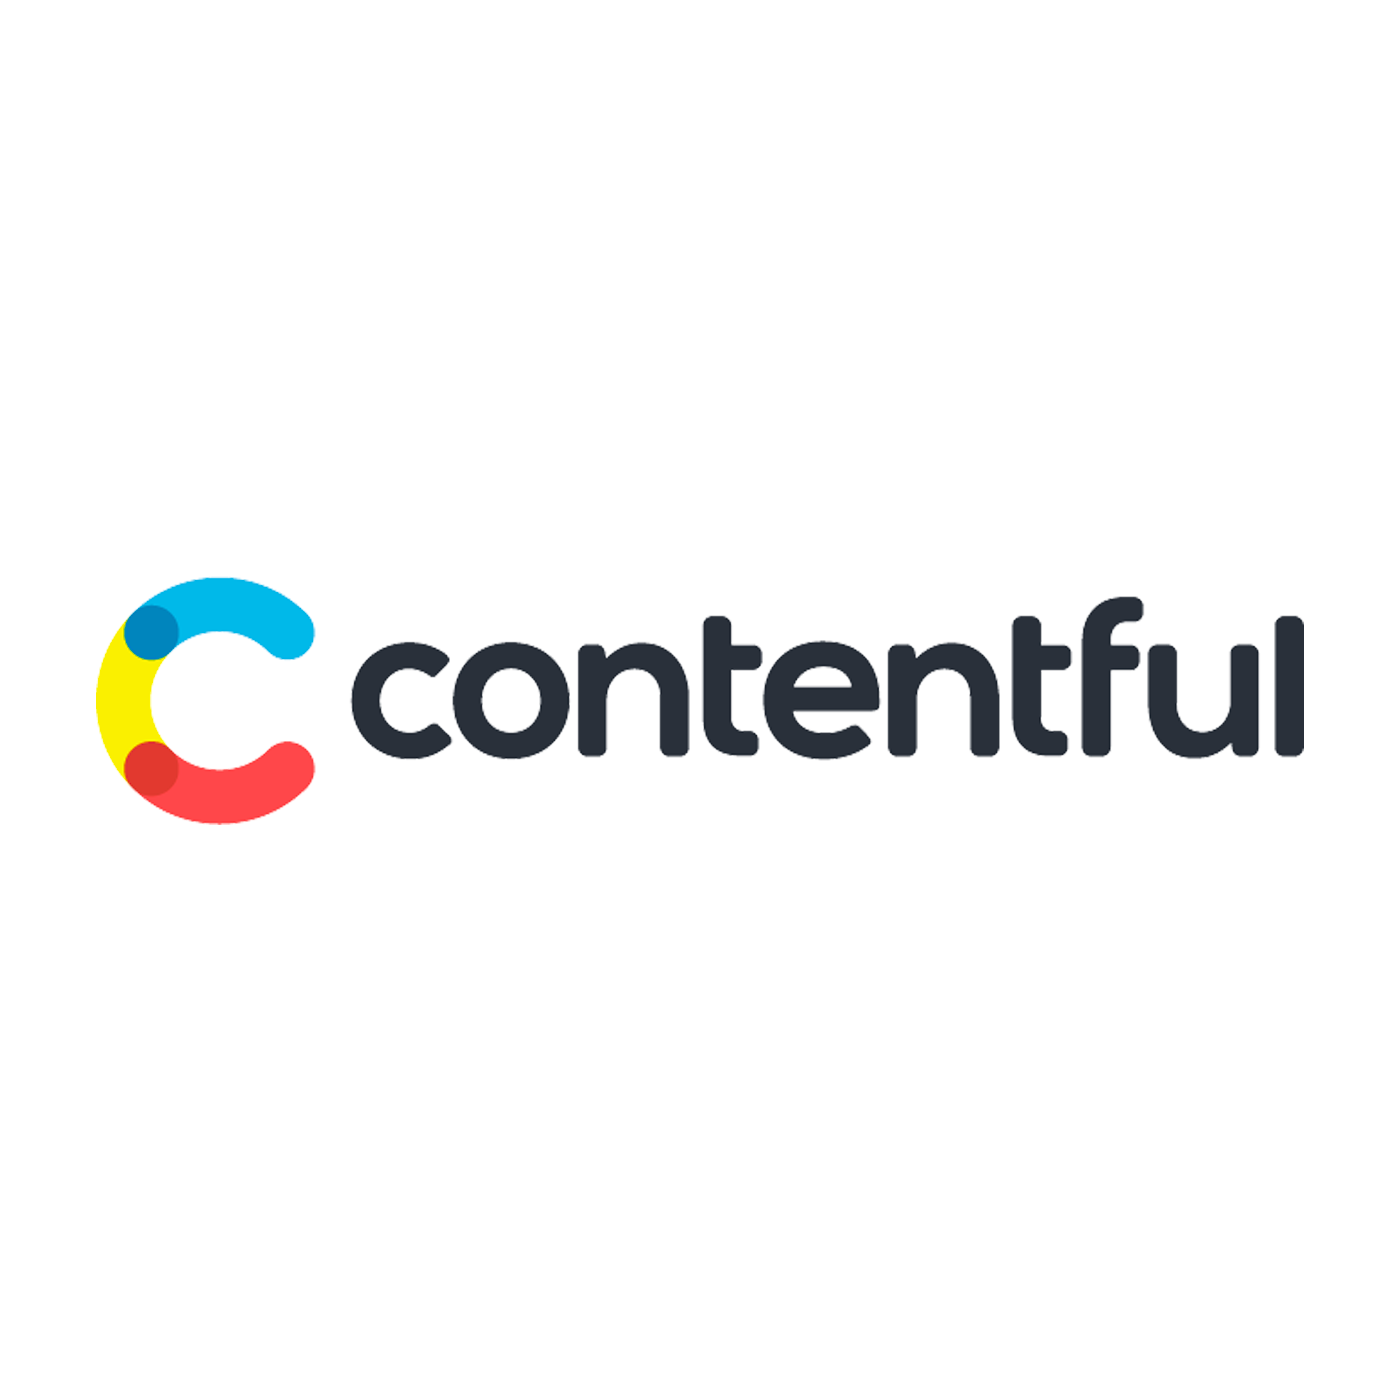 The Contentful Logo